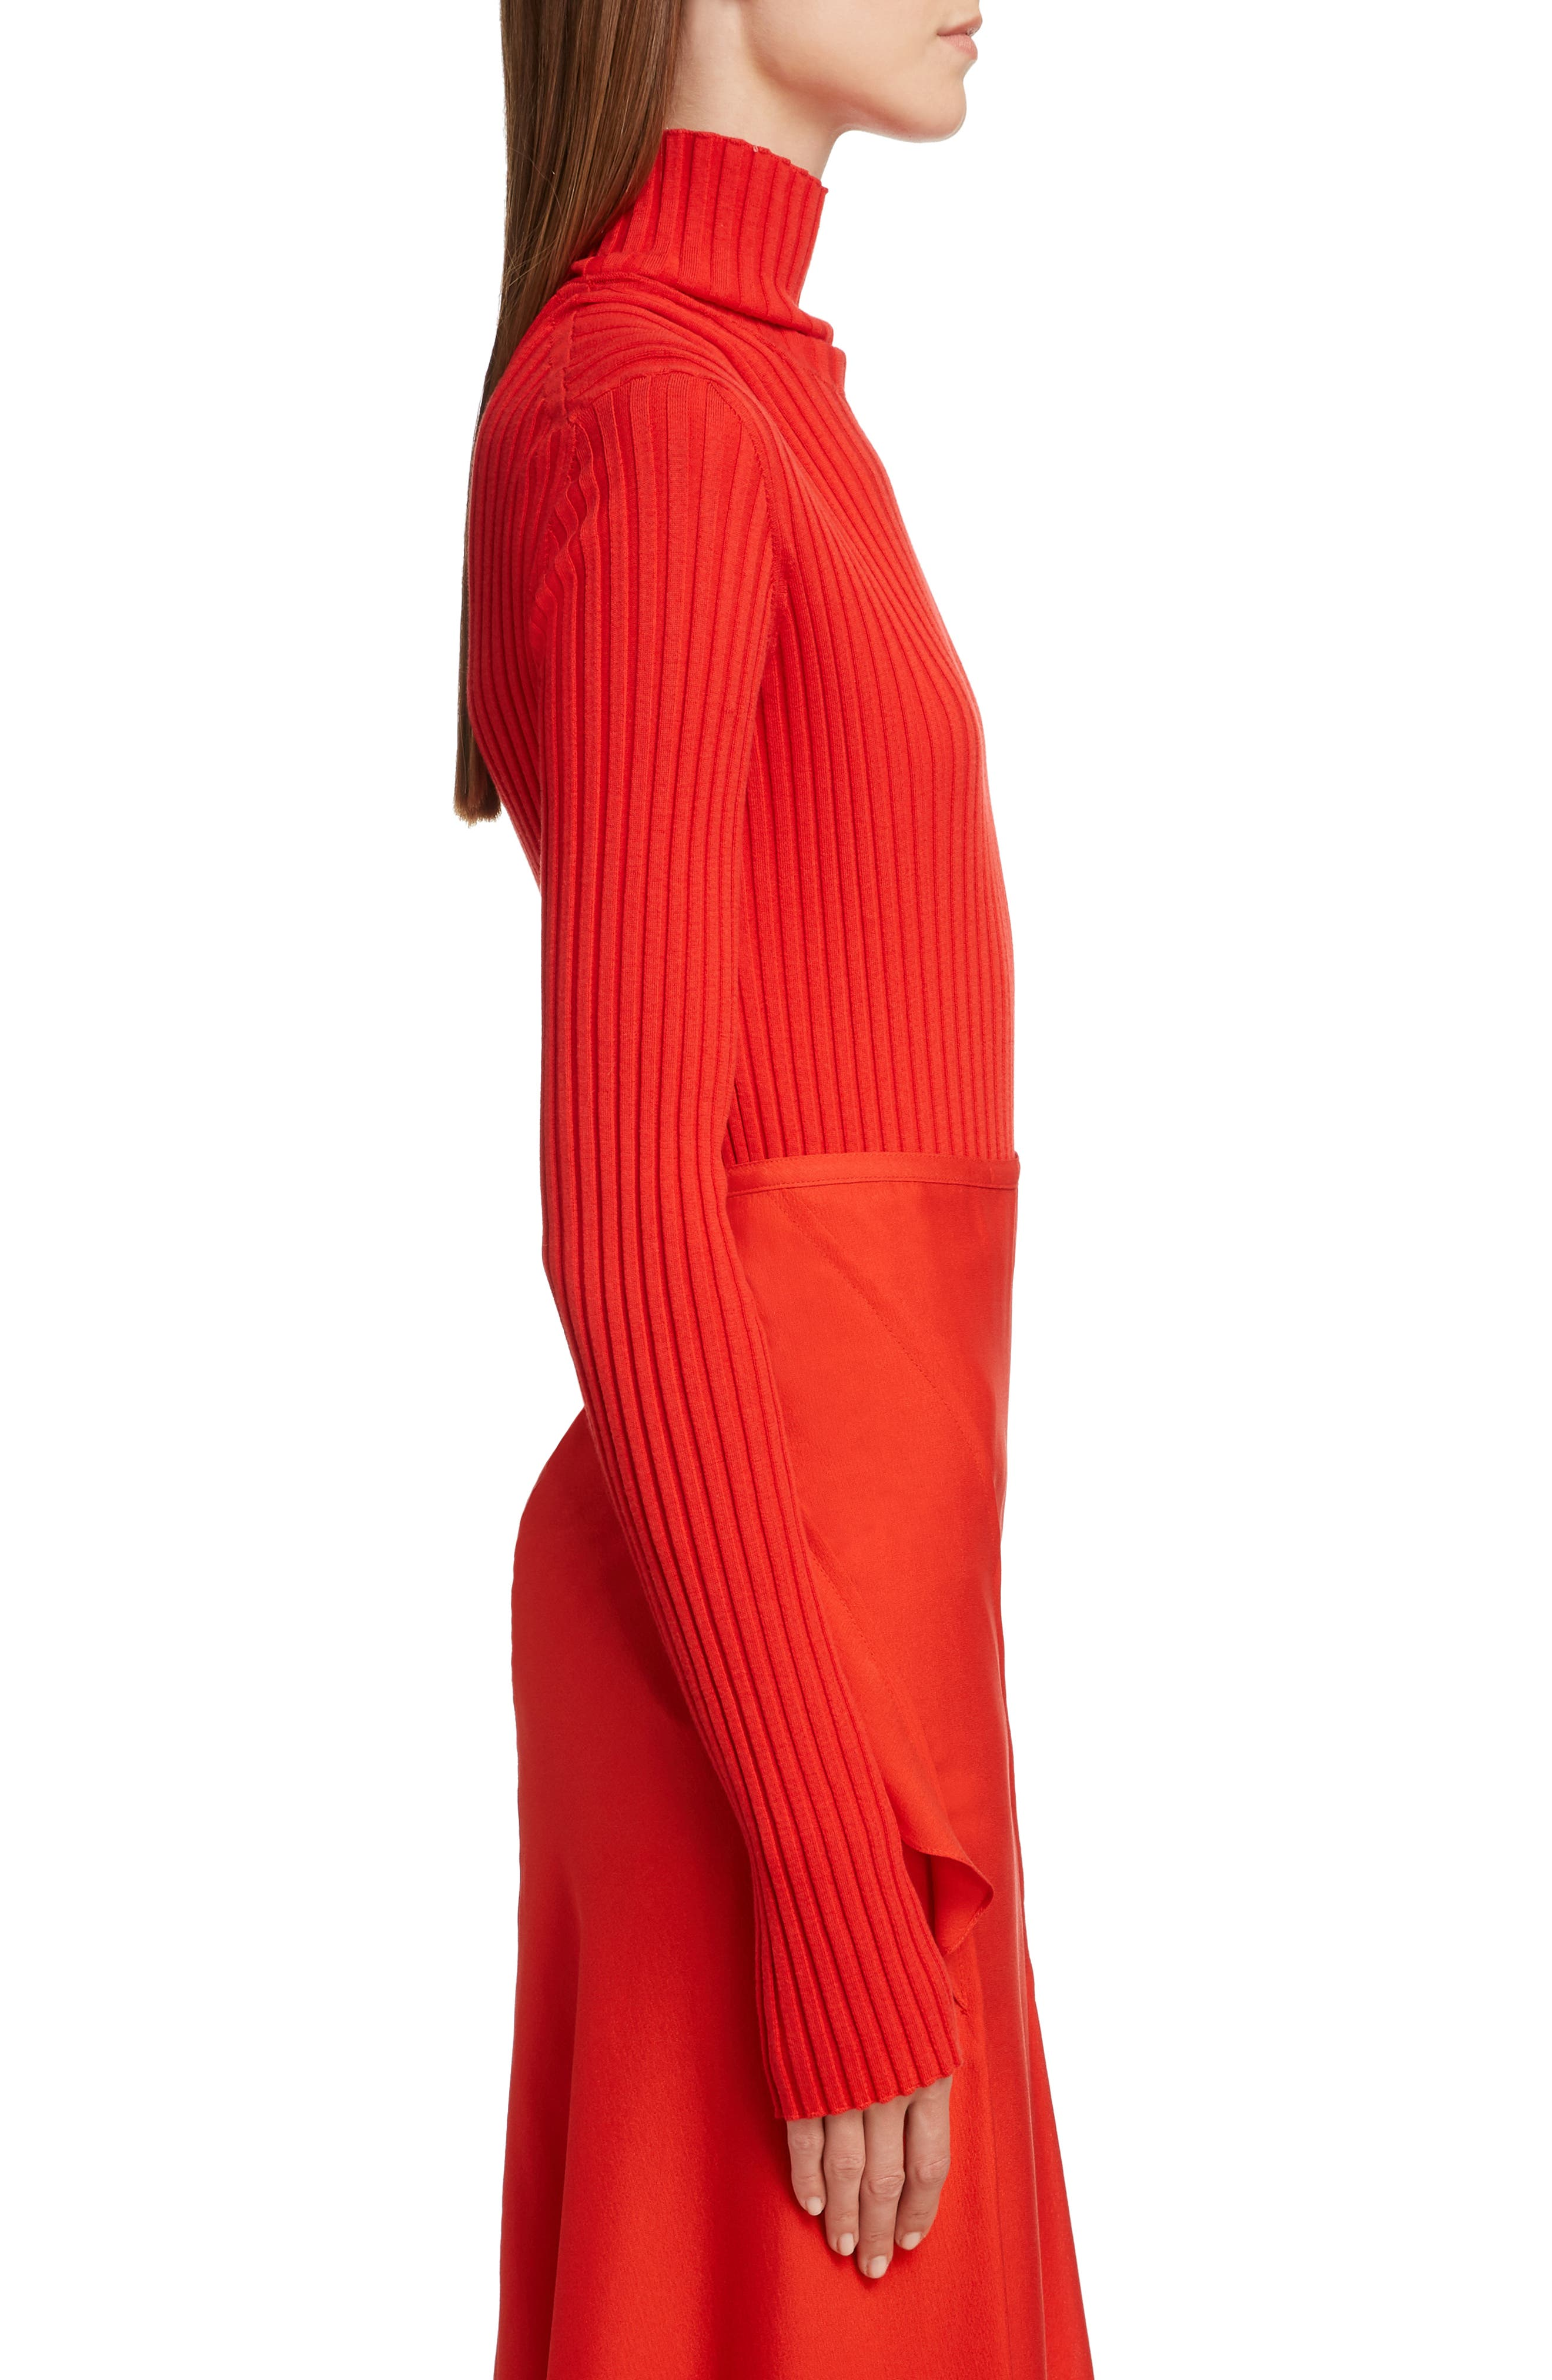 VICTORIA BECKHAM, Gathered Sleeve Rib Knit Turtleneck Sweater, Alternate thumbnail 3, color, BRIGHT RED